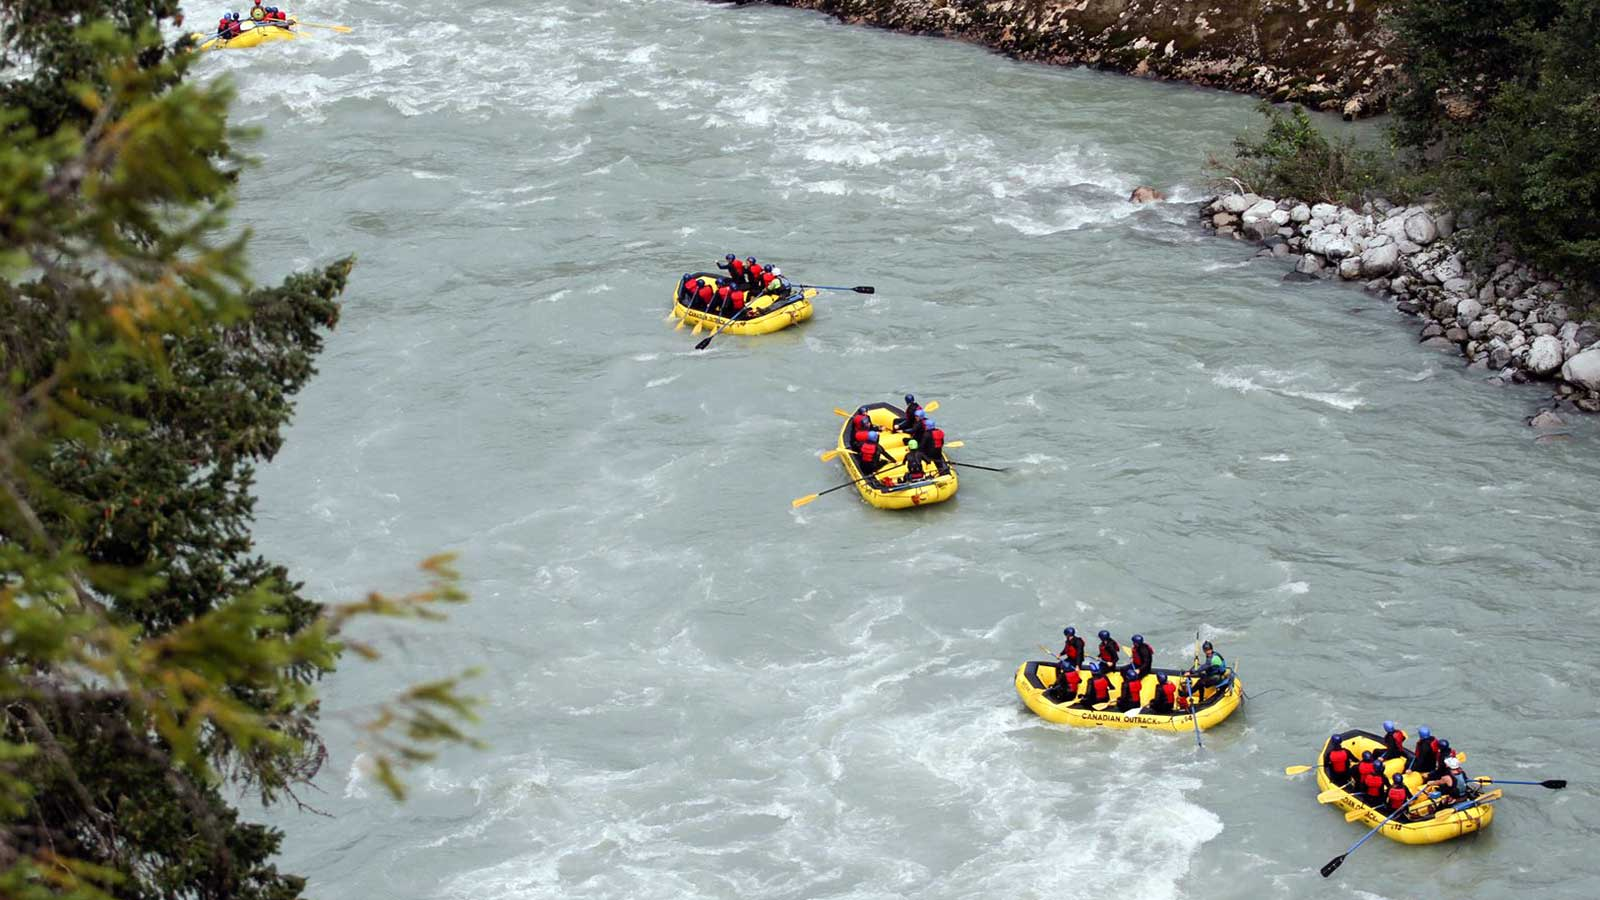 group of people river rafting in yellow boats